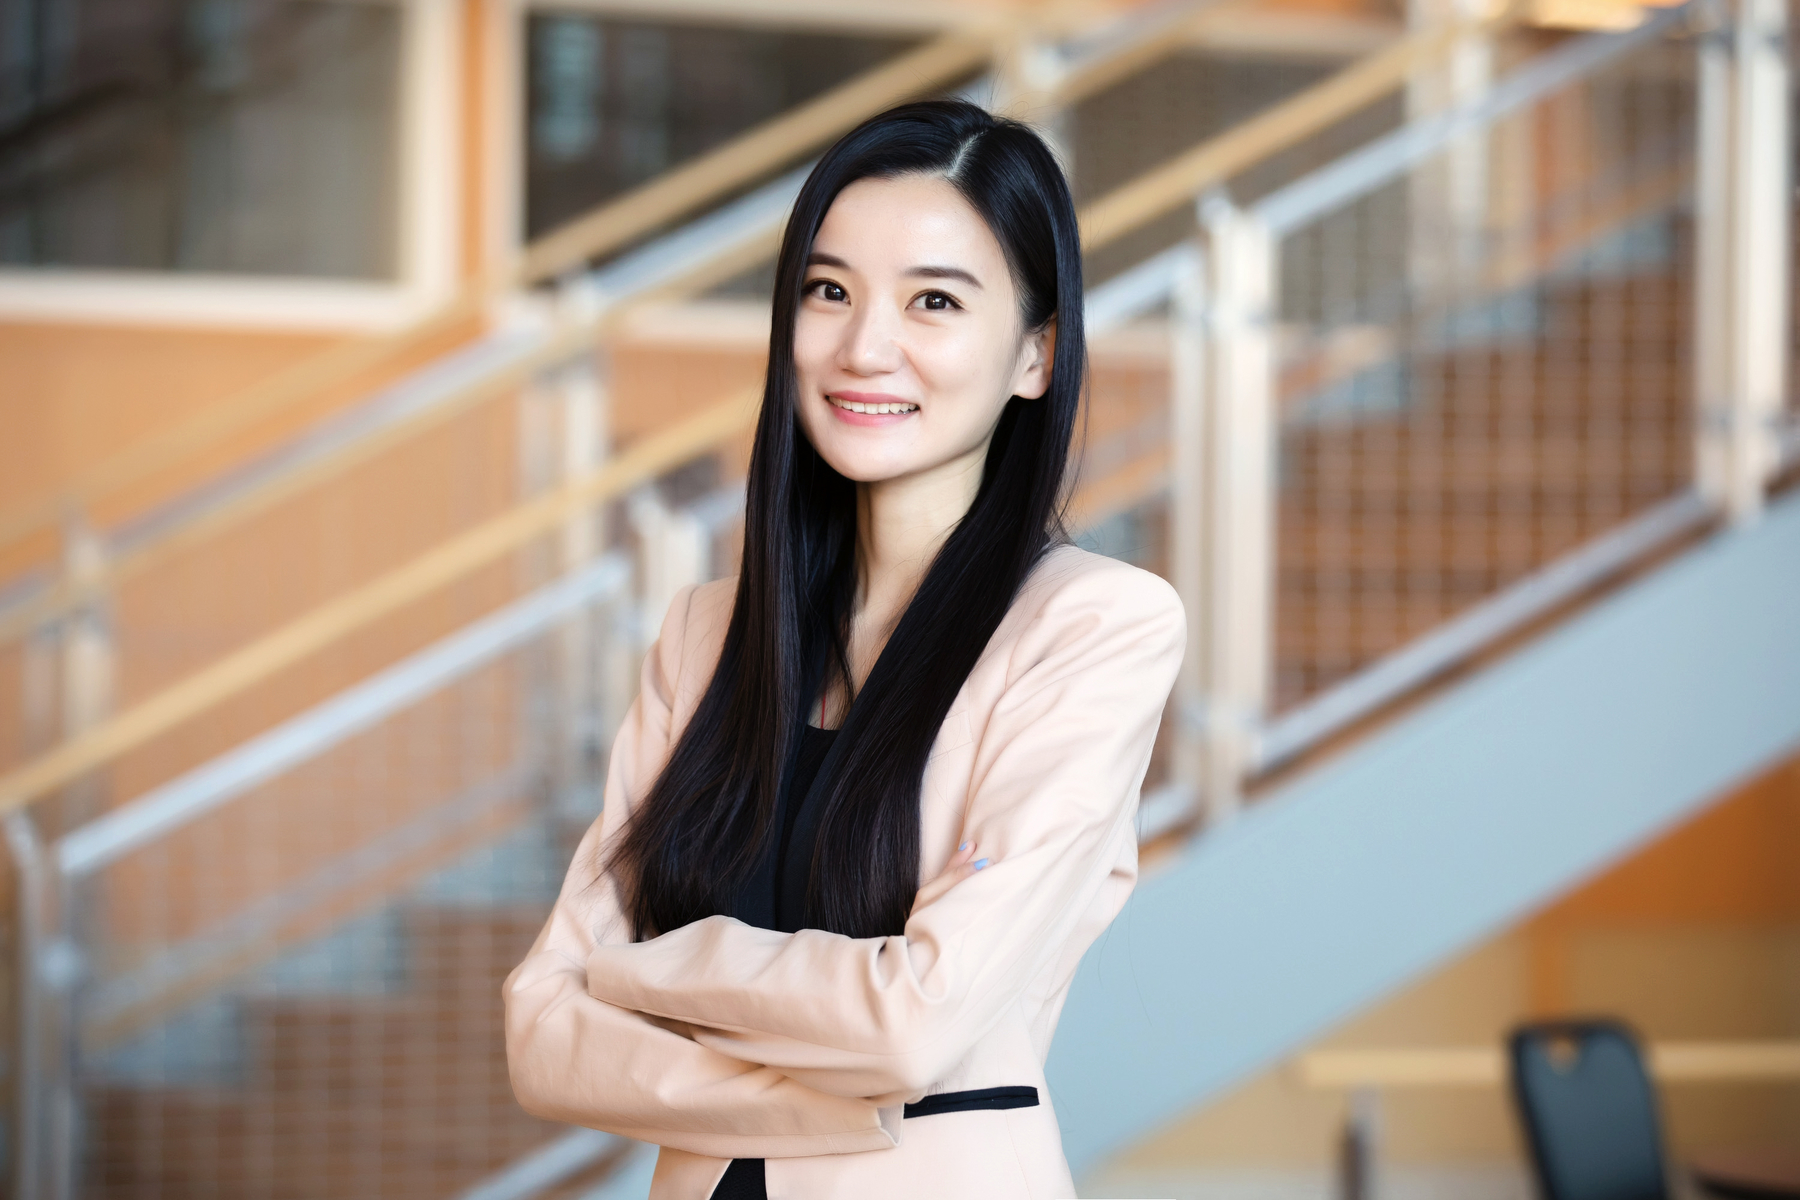 Photo of Yuqian Xu, a professor of business administration at the Gies College of Business at the University of Illinois.